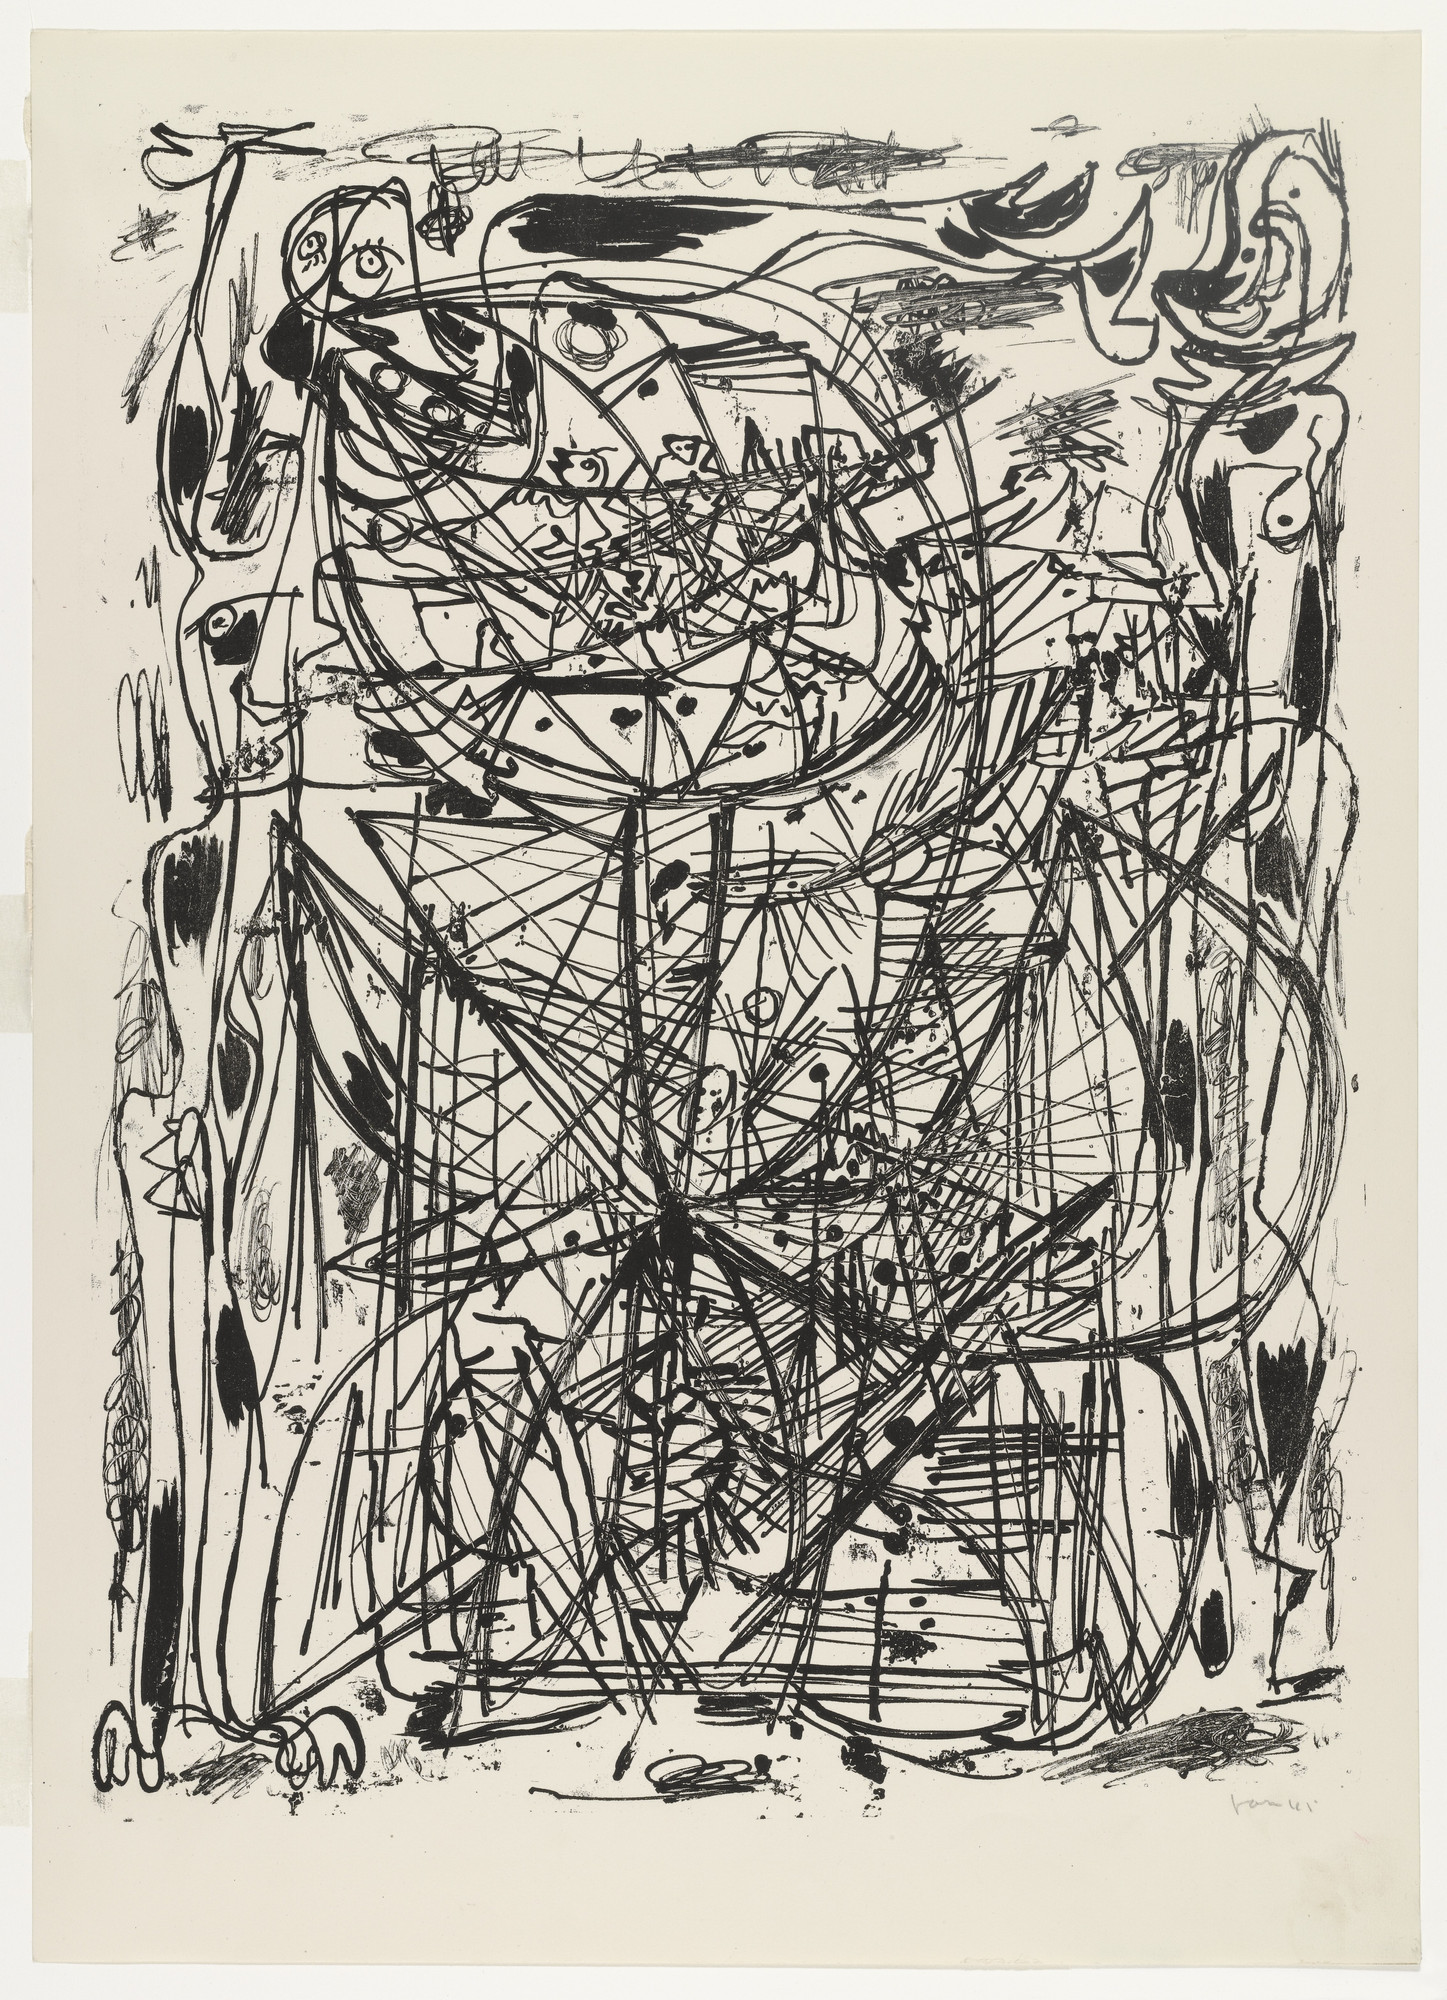 Asger Jorn. Untitled from 8 Lithografier (8 Lithographs). 1945